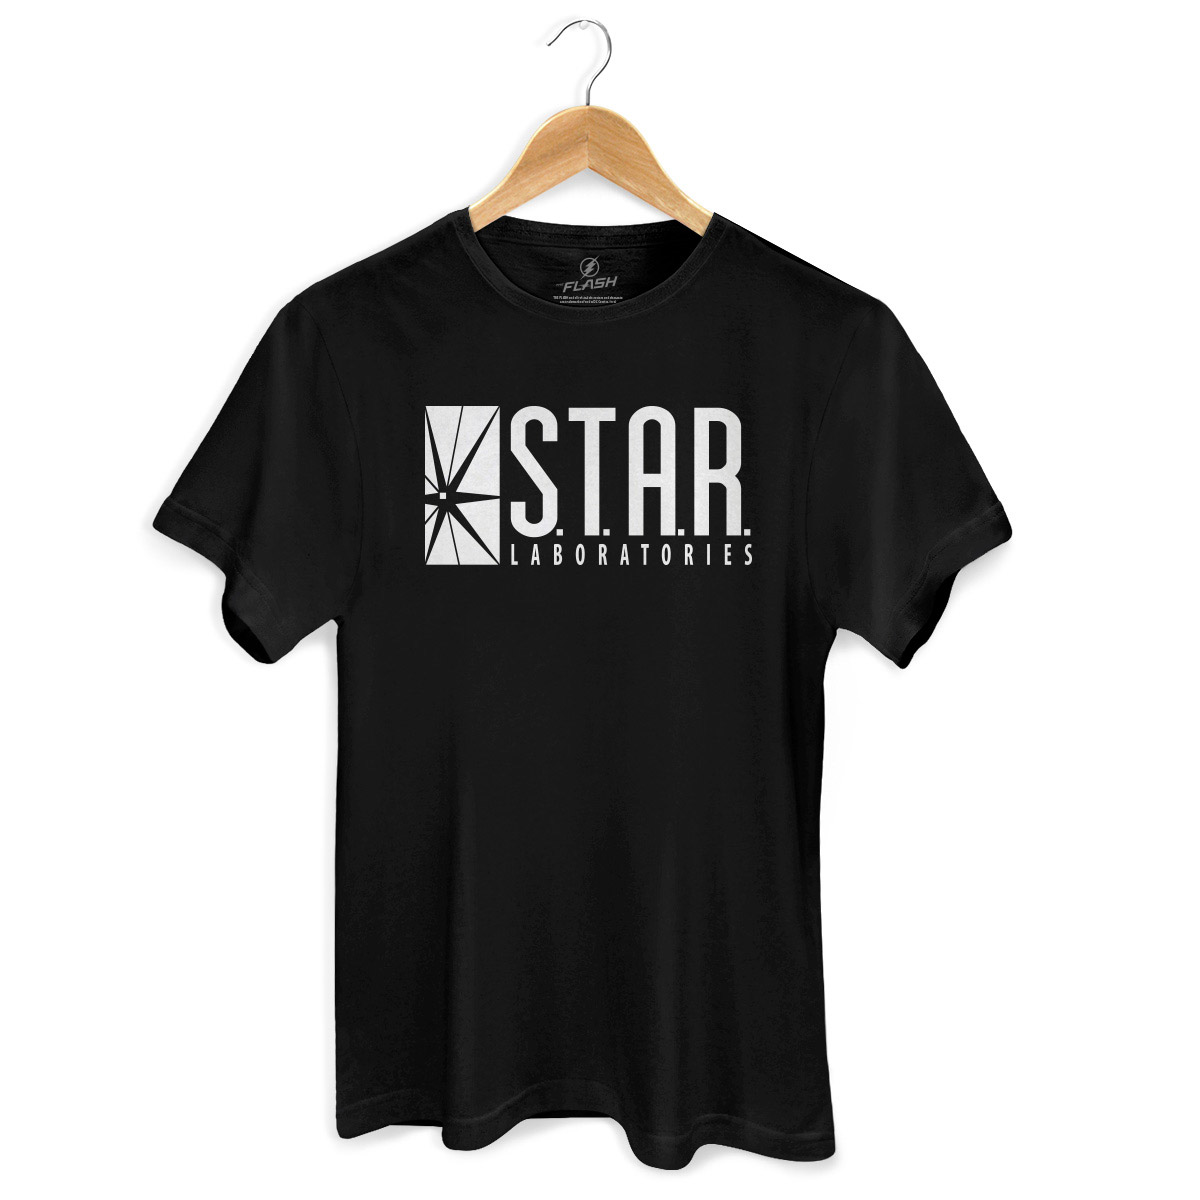 Camiseta Masculina The Flash Serie STAR Laboratories  - bandUP Store Marketplace